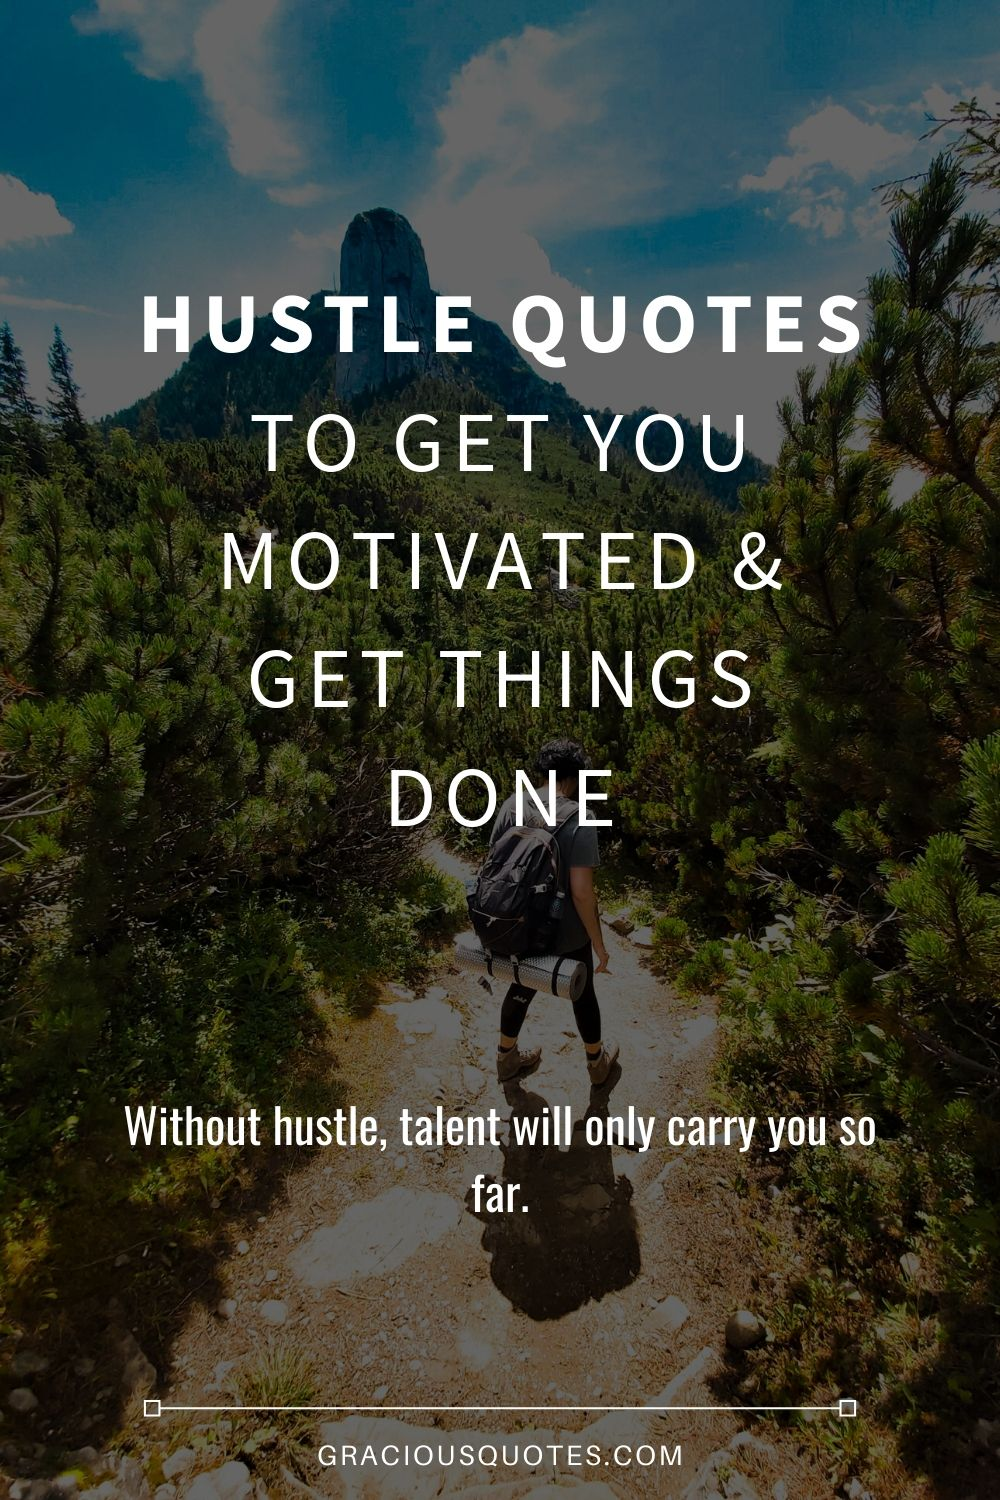 Hustle-Quotes-To-Get-You-Motivated-Get-Things-Done-Gracious-Quotes